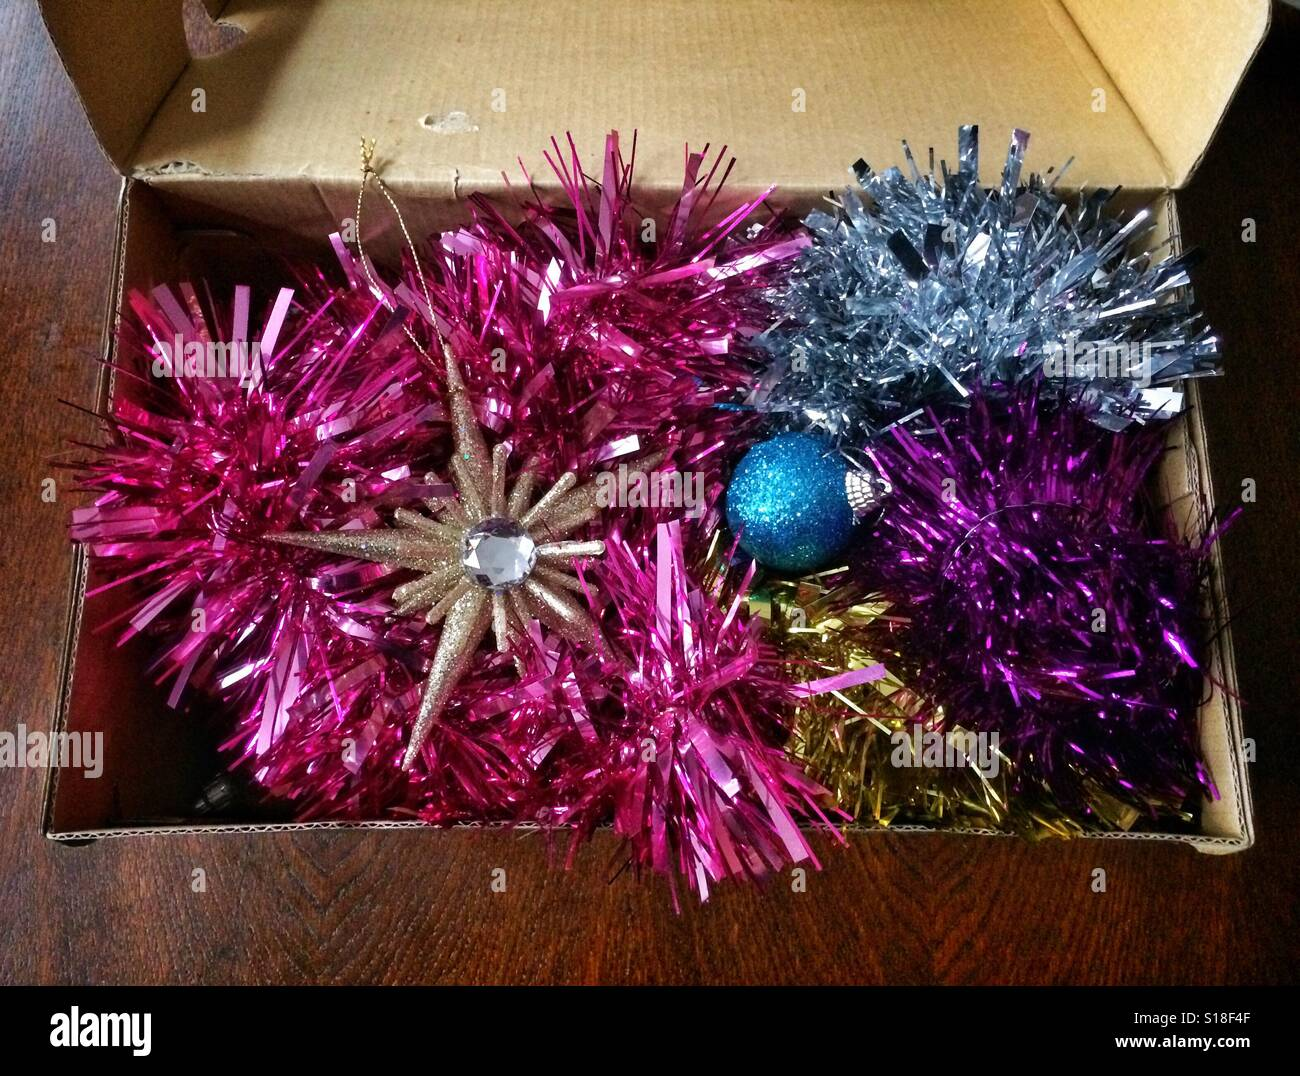 christmas tree decorations packed away in a cardboard box ready for next year - Cardboard Box Christmas Decorations